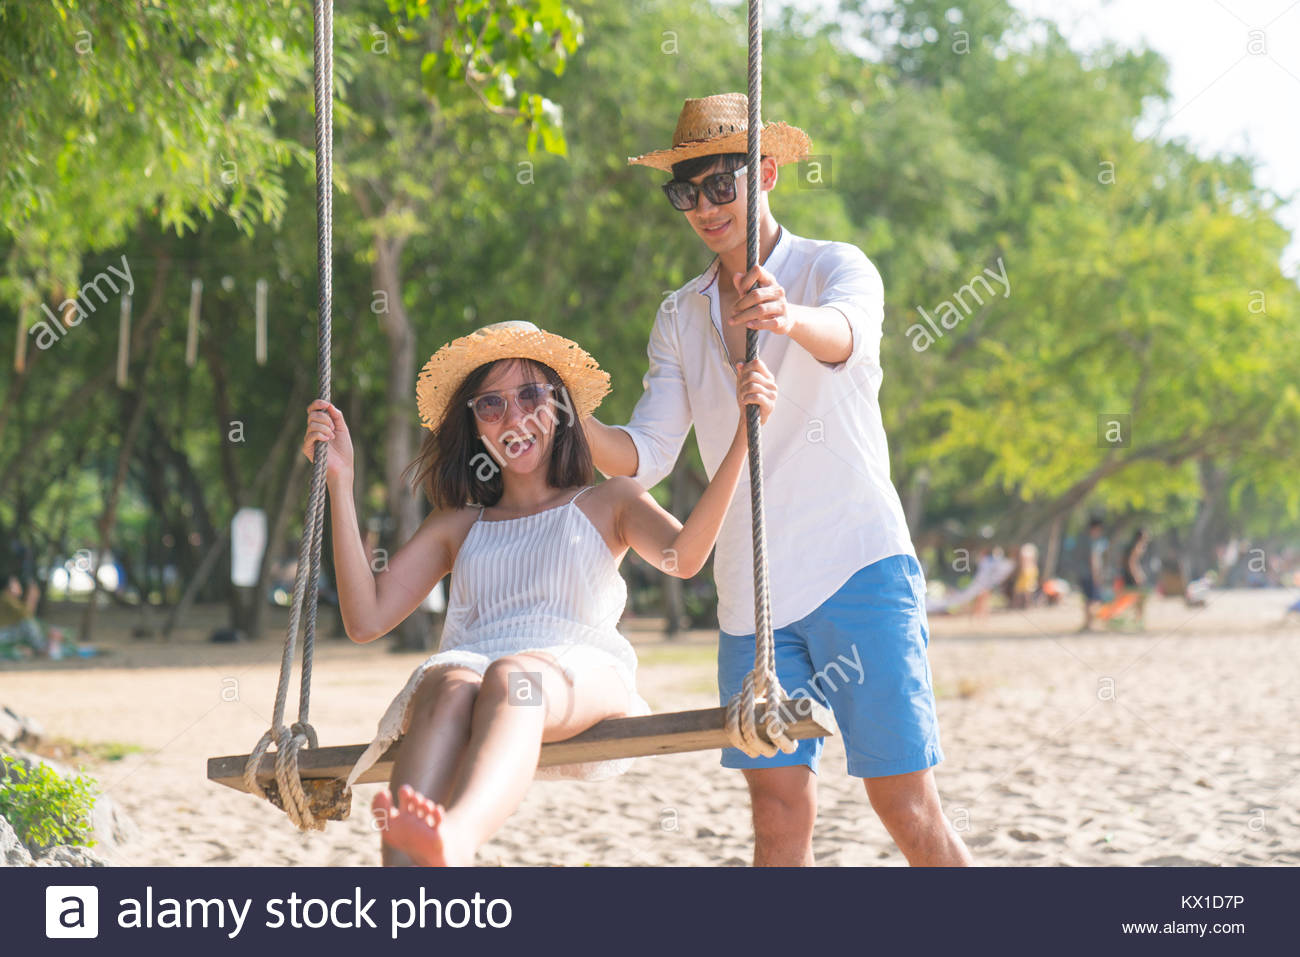 Couple on paradise beach resort sharing honeymoon - Stock Image